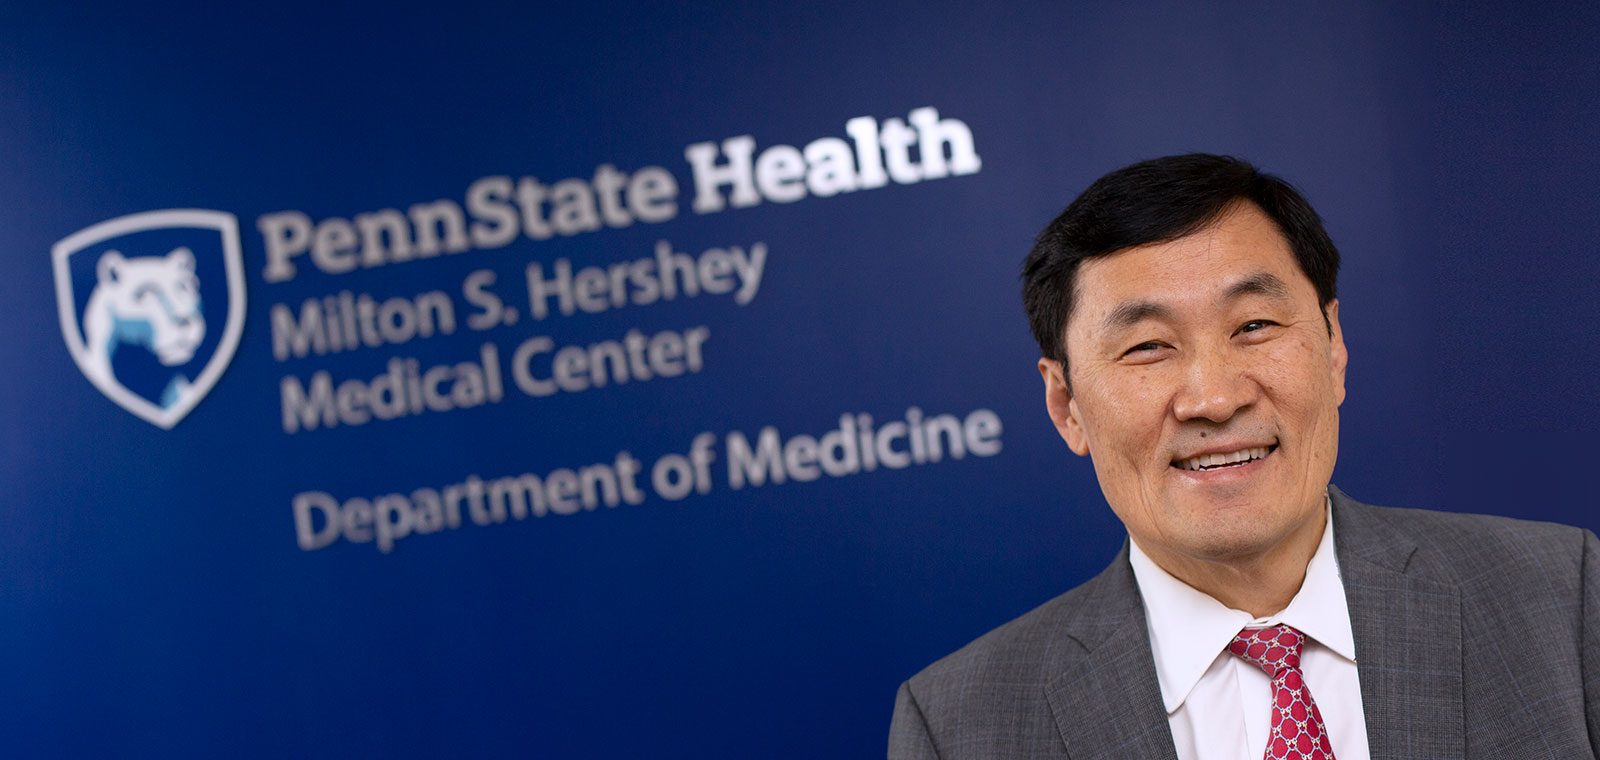 Dr. Thomas Ma, chair of the Department of Medicine at Penn State College of Medicine, is pictured in front of a blue photo backdrop with the department's logo. He is talking animatedly and looks happy.